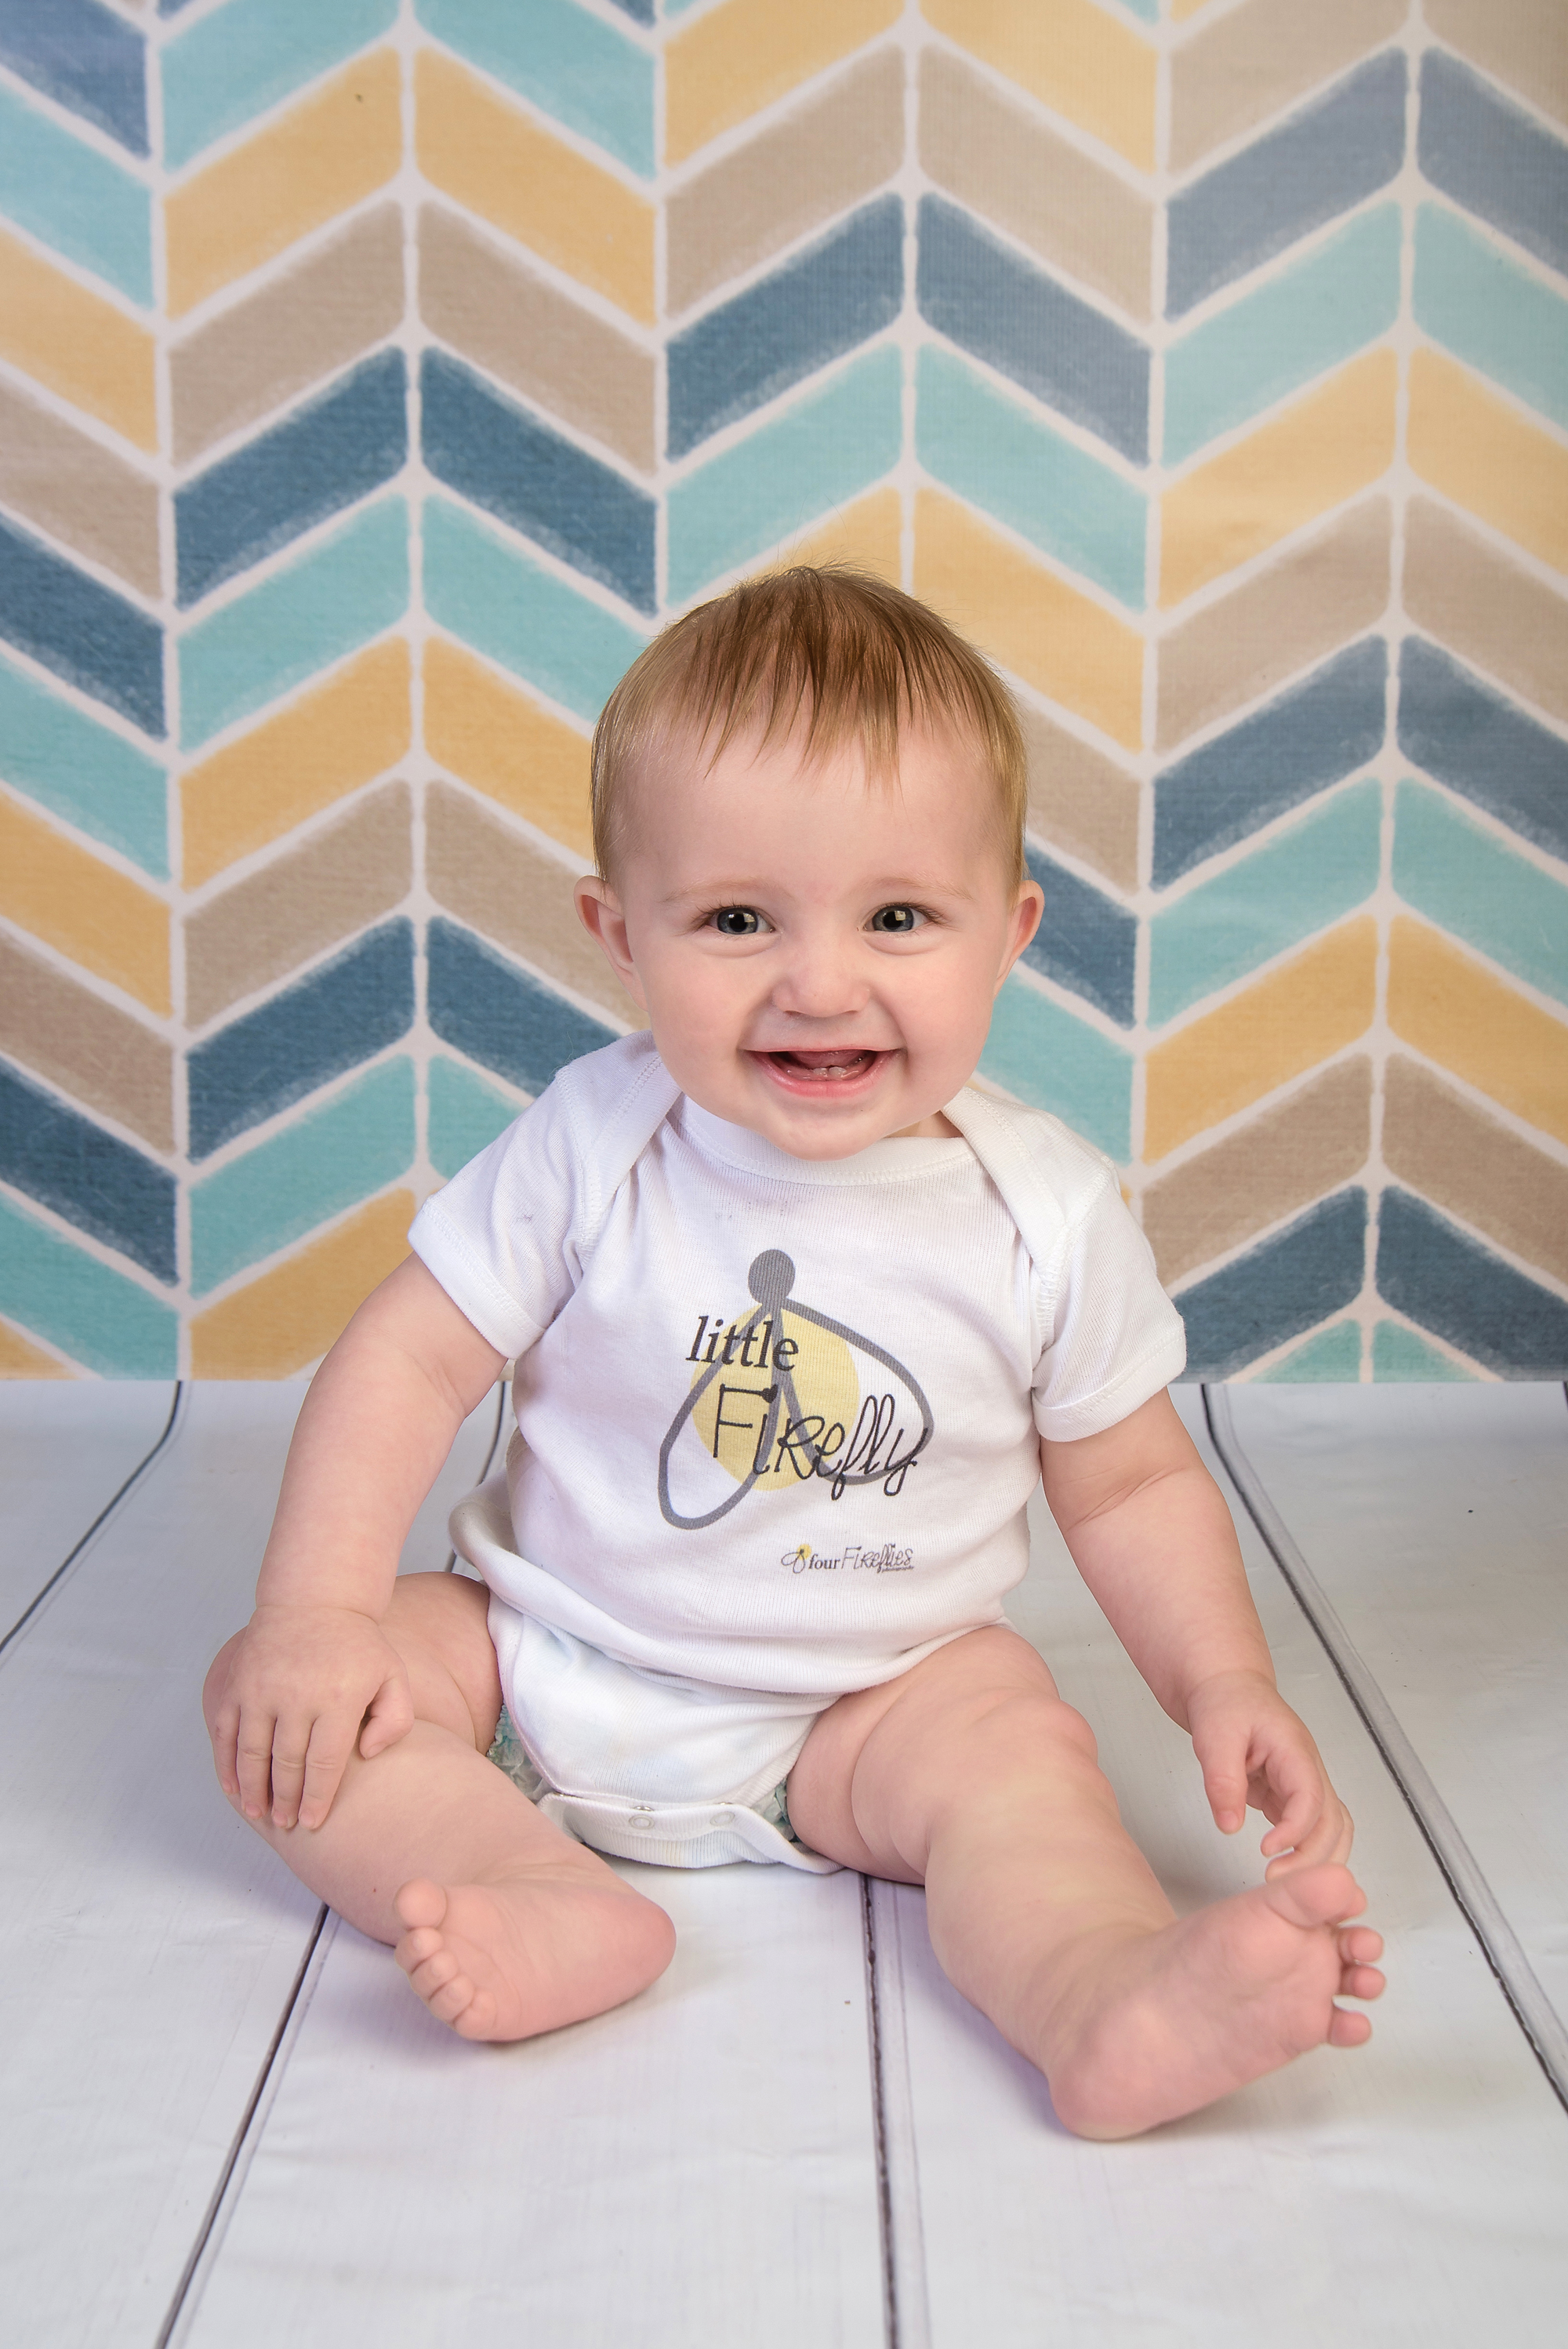 st-louis-photography-studio-six-month-milestone-session-boy-on-yellow-and-blue-weaing-four-fireflies-photography-onsie.jpg